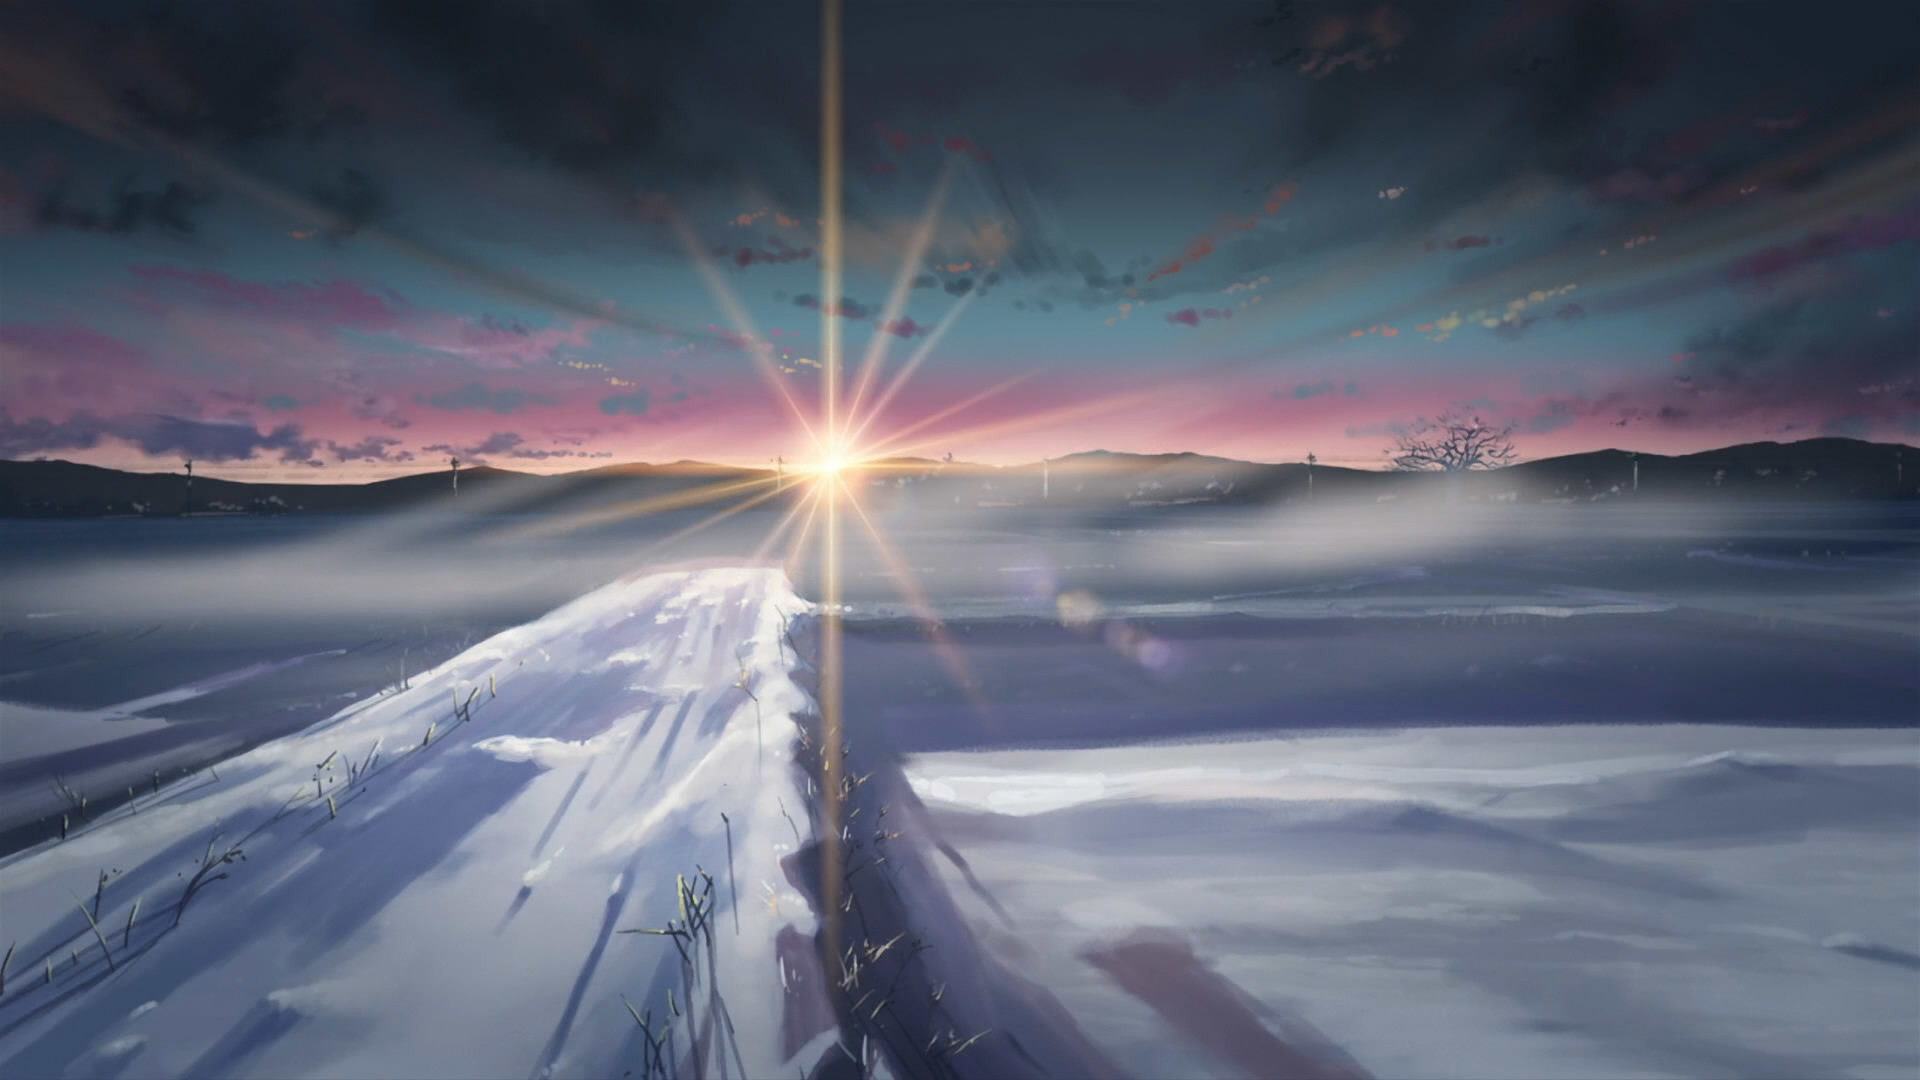 1920x1080 winter, snow, Makoto Shinkai, sunlight, 5 Centimeters Per Second - Free  Wallpaper / WallpaperJam.com